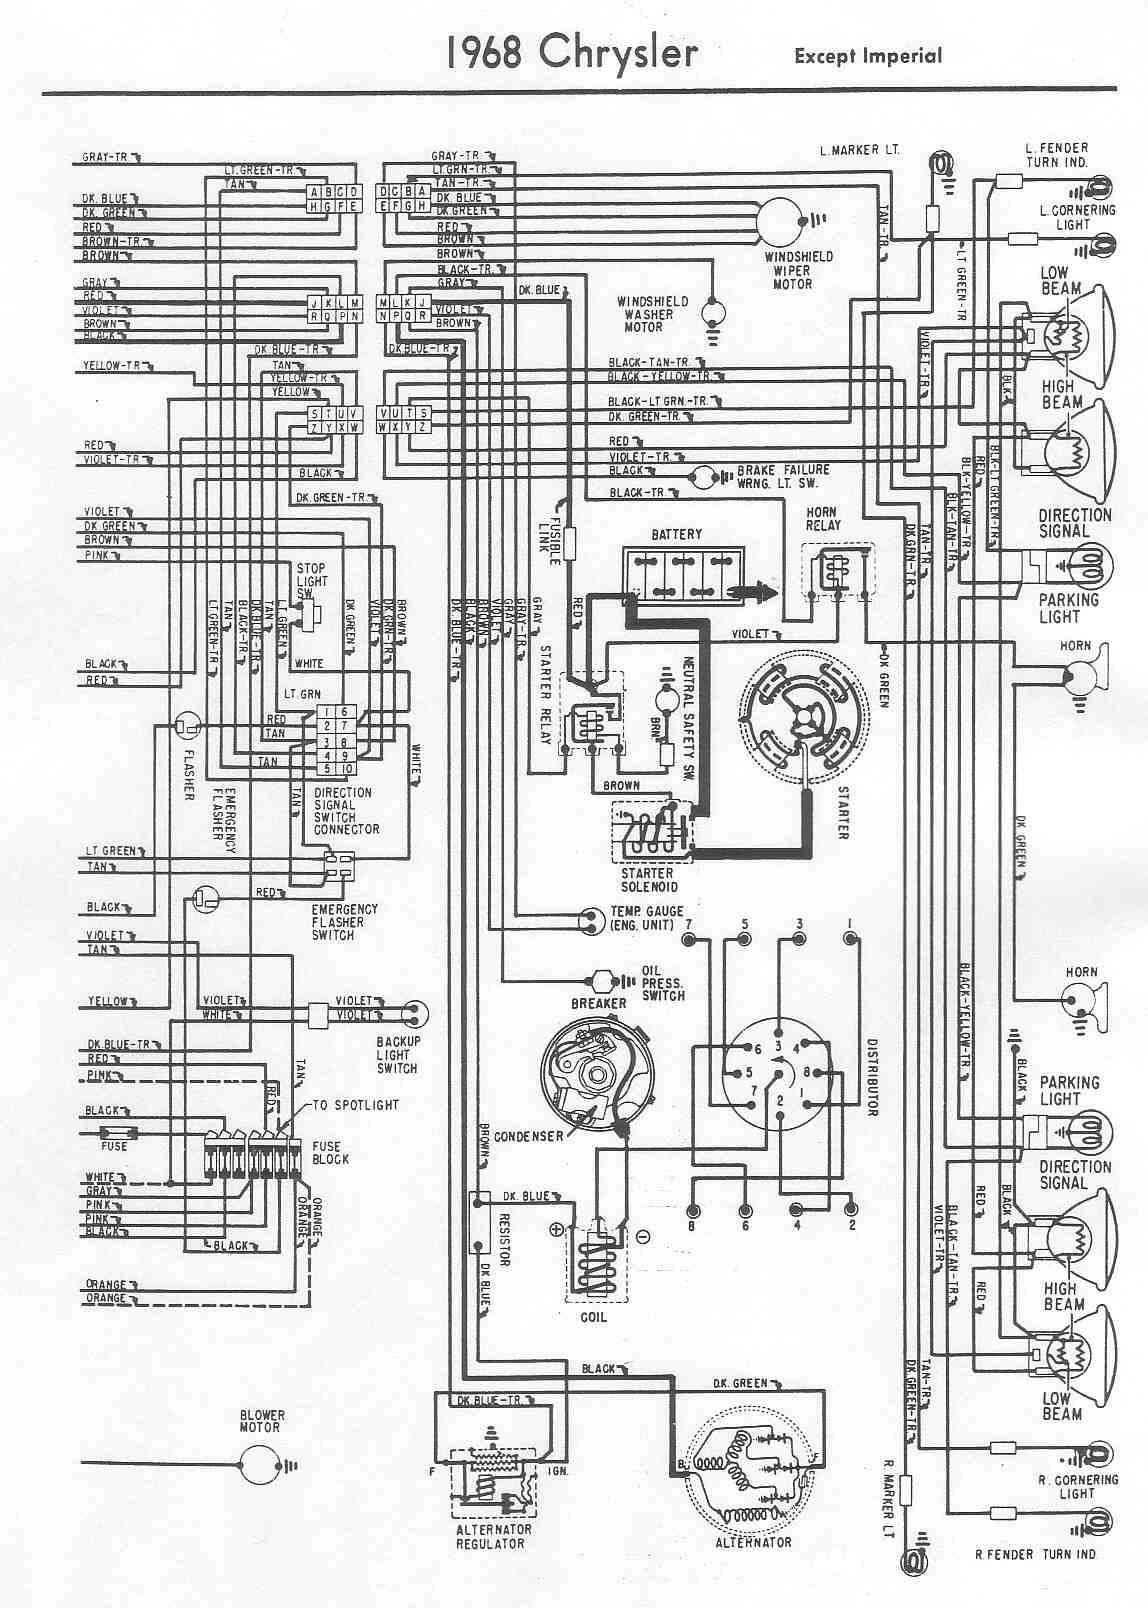 electrical wiring diagram of 1968 chrysler all model?t\\\\\\\\\\\\\\\\\\\\\\\\\\\\\\\\\\\\\\\\\\\\\\\\\\\\\\\\\\\\\\\\\\\\\\\\\\\\\\\\\\\\\\\\\\\\\\\\\\\\\\\\\\\\\\\\\\\\\\\\\\\\\\\\\\\\\\\\\\\\\\\\\\\\\\\\\\\\\\\\\\\\\\\\\\\\\\\\\\\\\\\\\\\\\\\\\\\\\\\\\\\\\\\\\\\\\\\\\\\\\\\\\\\\\\\\\\\\\\\\\\\\\\\\\\\\\\\=1497187345 wiring diagram 68 imperial wiring diagram blog data